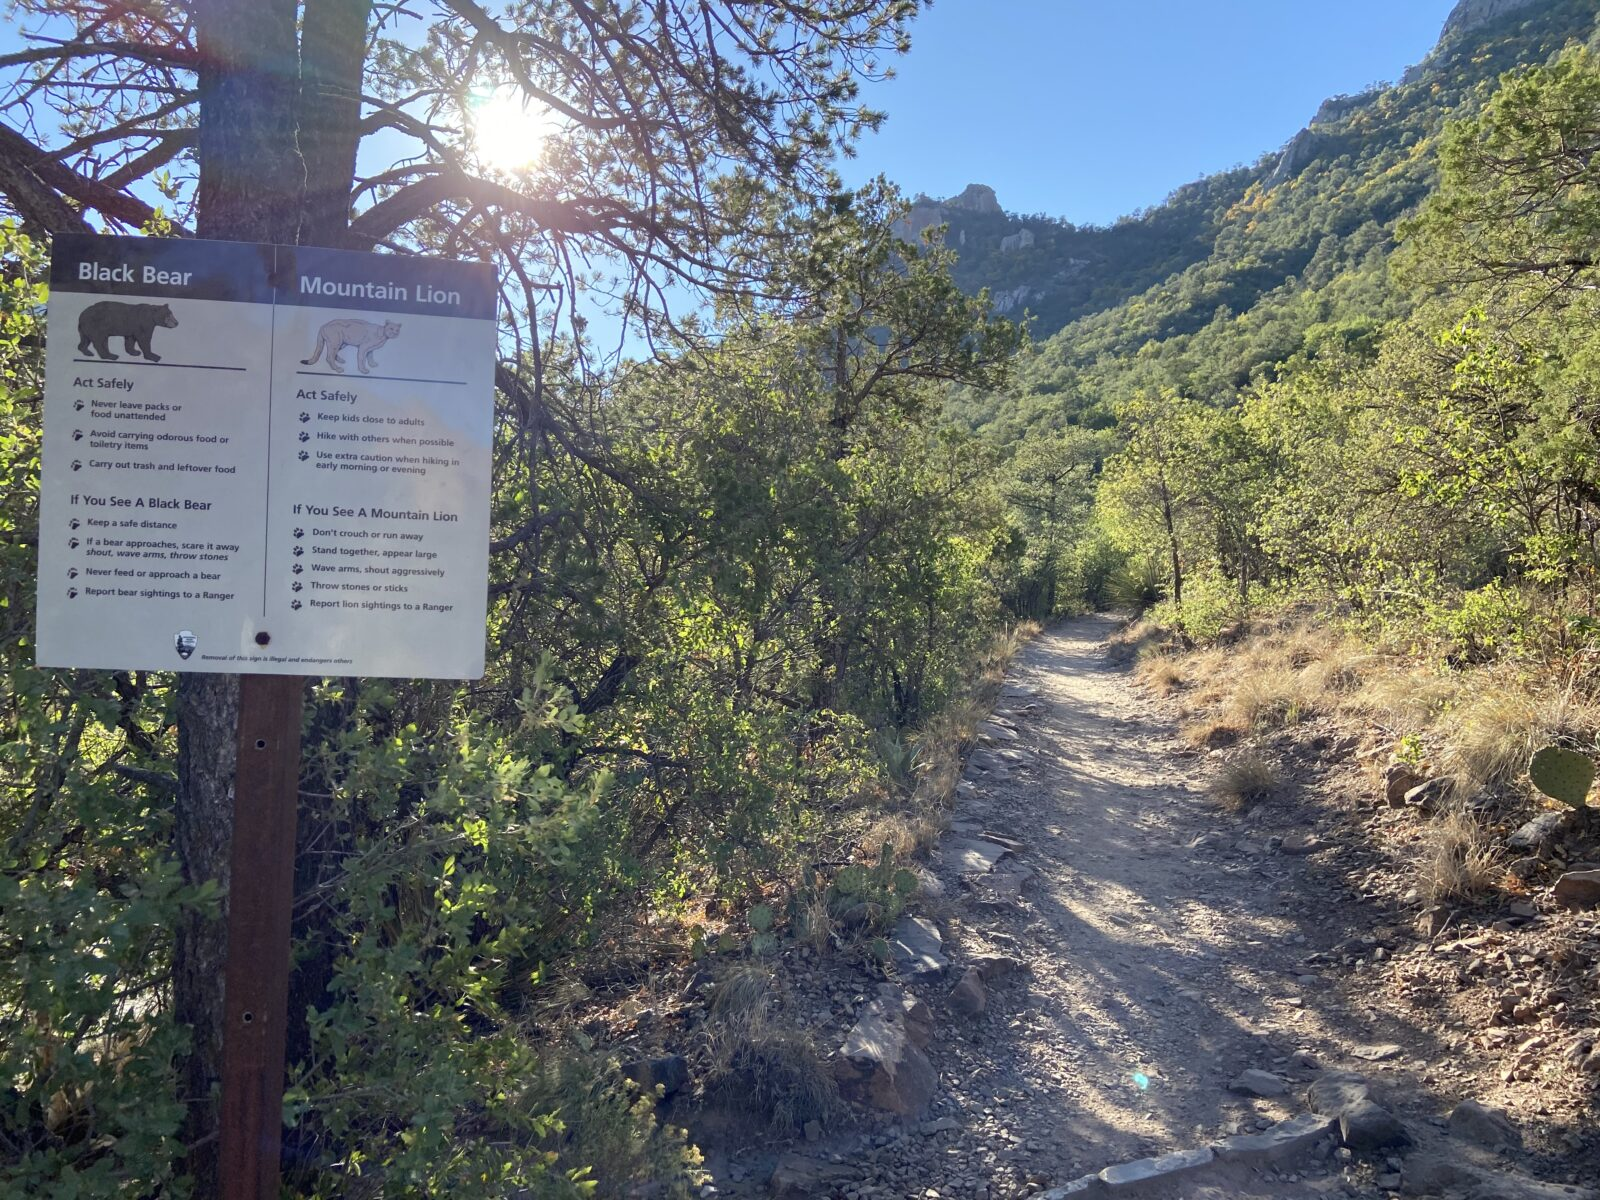 The Lost Mine Trail warns of black bears and mountain lions at Big Bend National Park.